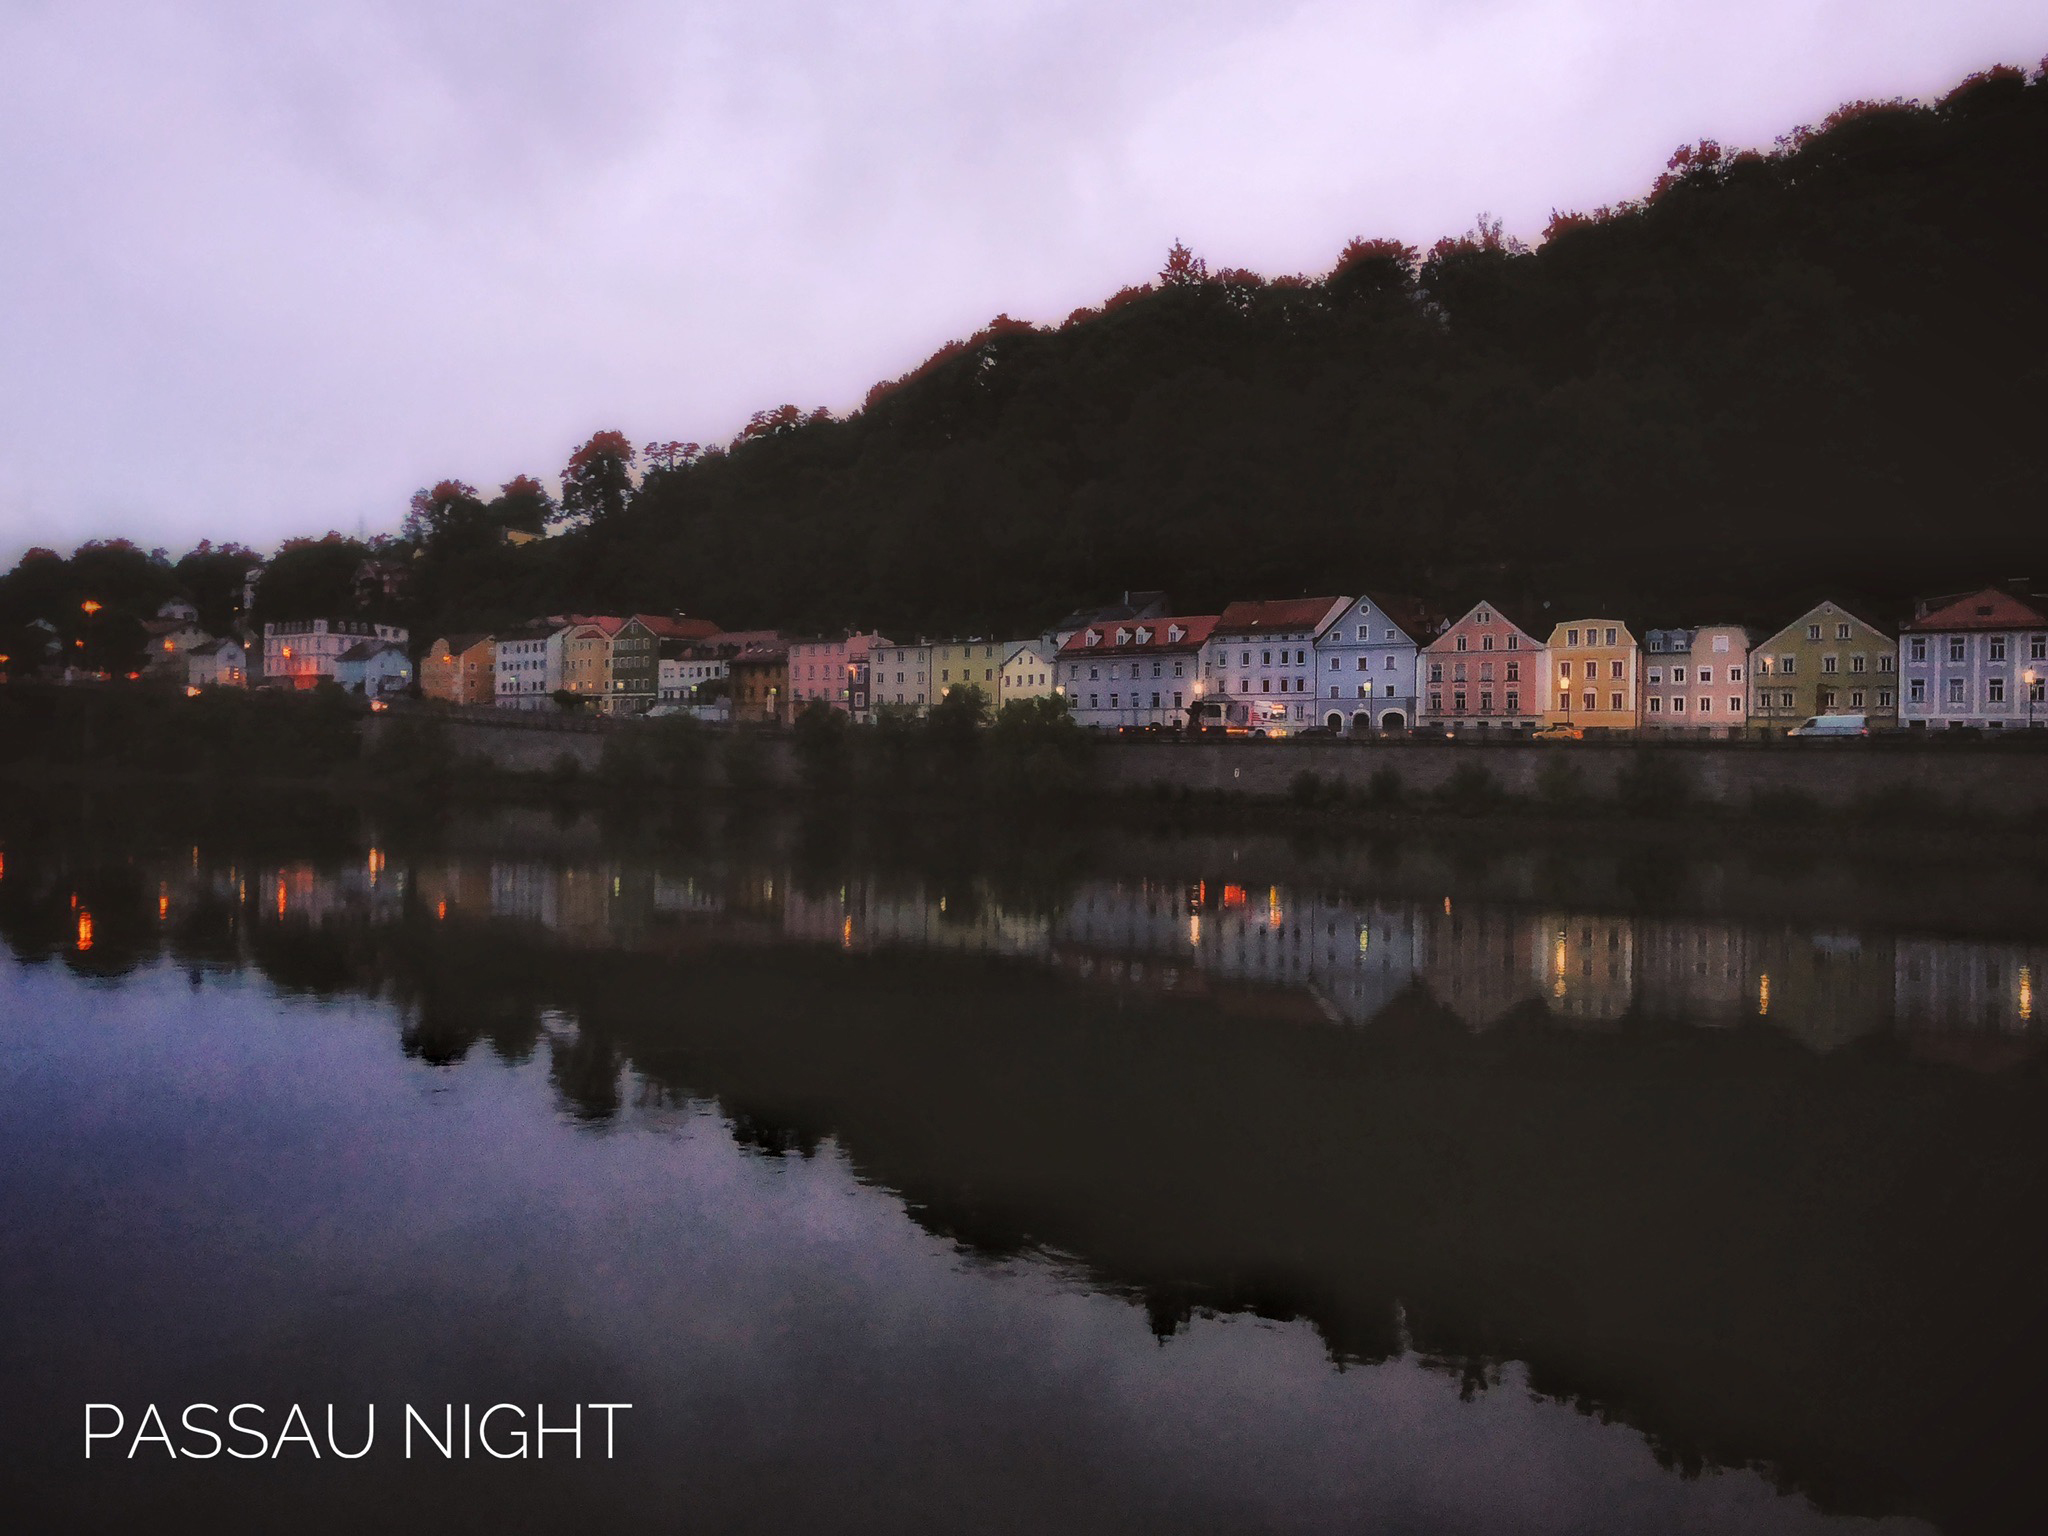 Passau Night